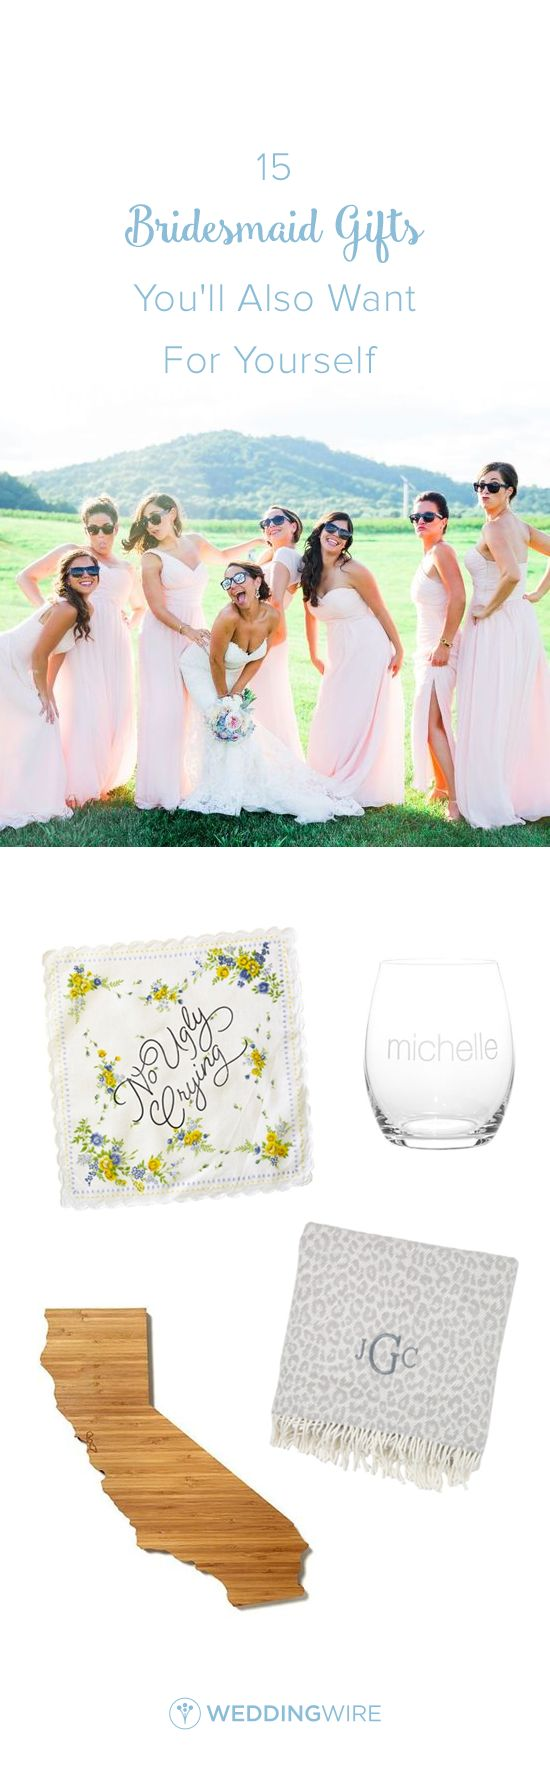 272 best bridesmaid gift ideas images on pinterest dream wedding 15 bridesmaid gifts youll also want for yourself solutioingenieria Choice Image